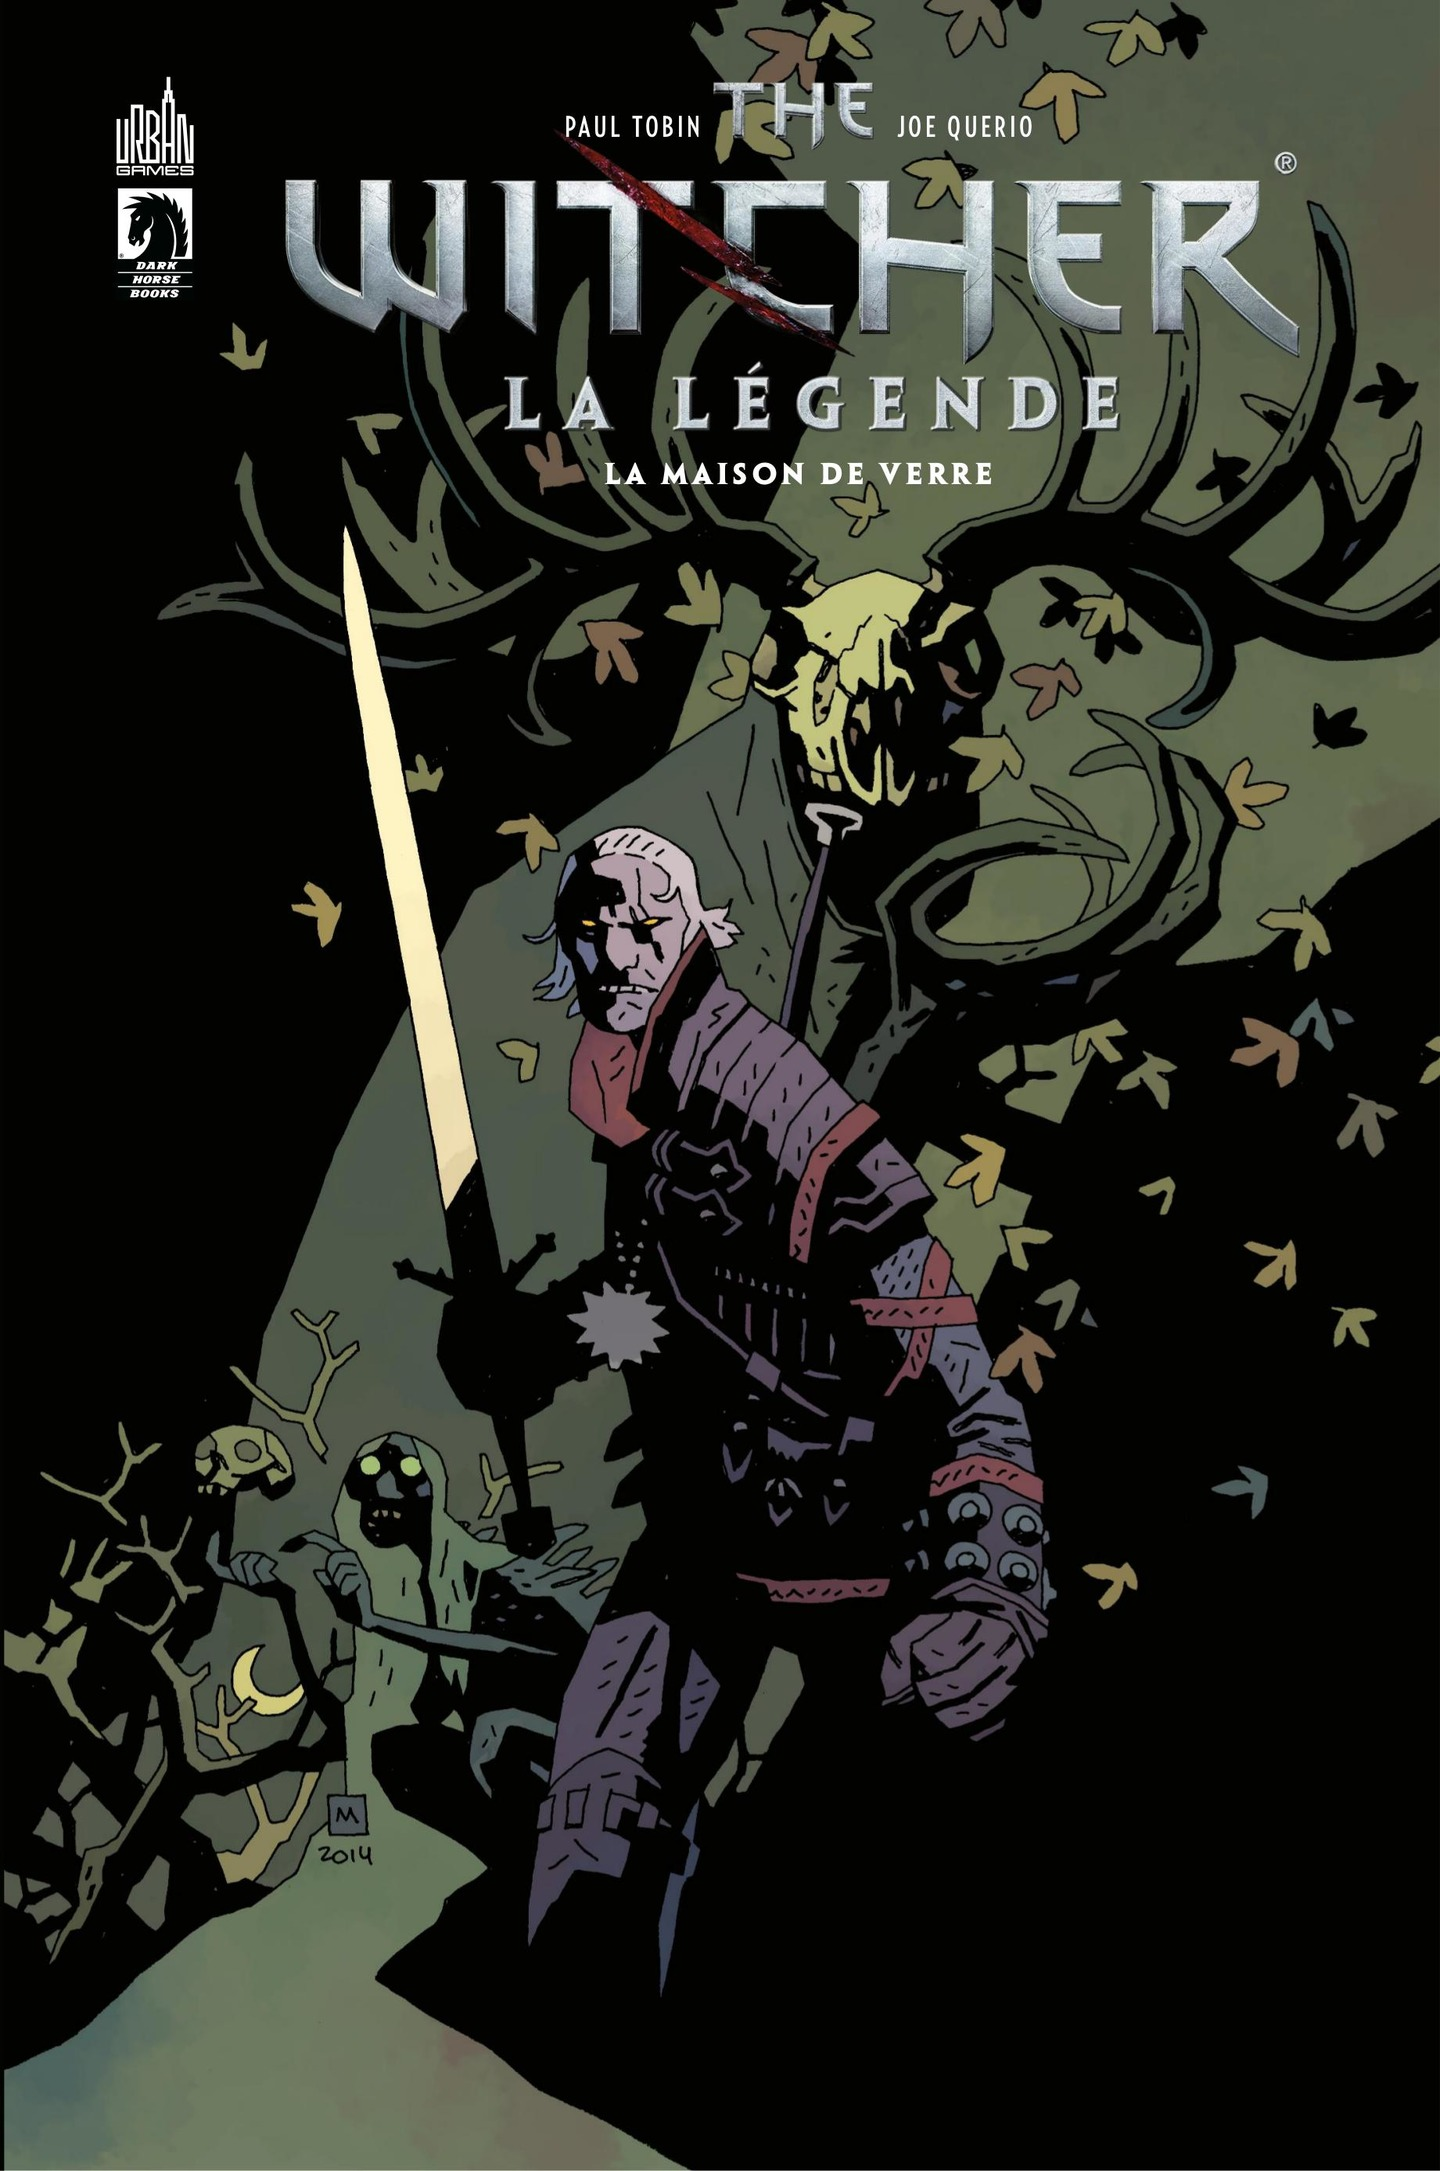 Vignette du livre The Witcher : la légende T.2 : La maison de verre - Paul Tobin, Joe Querio